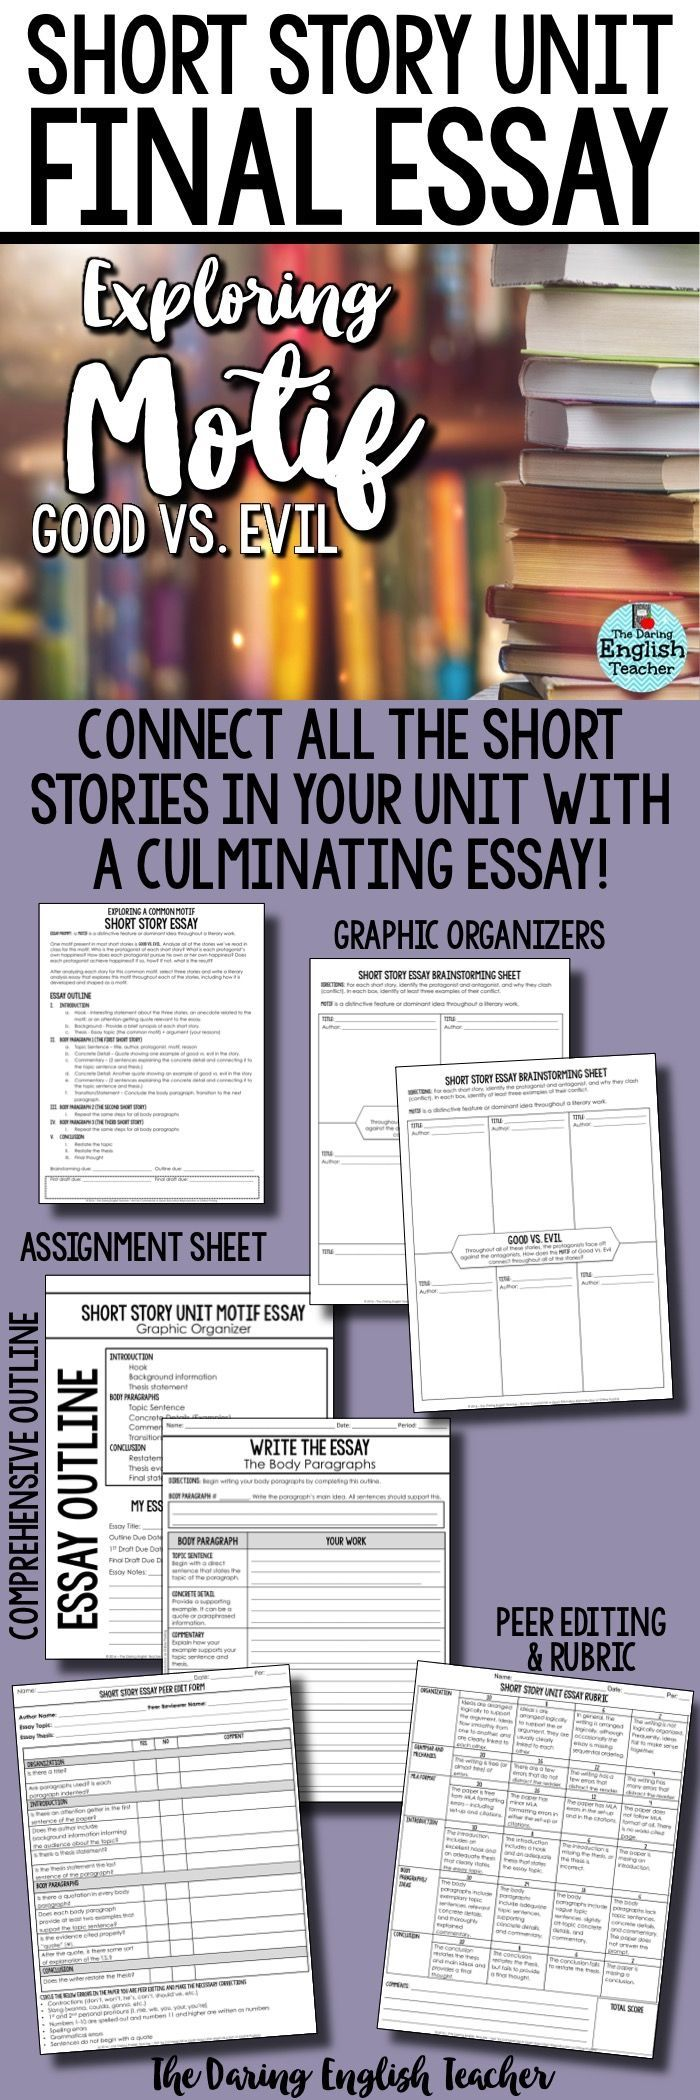 Sample Synthesis Essays Complete Your Short Story Unit With A Literary Analysis Essay That Explores  The Common Motif Of Good Vs Evil Across Three Different Stories English As A Second Language Essay also Business Plan To Buy A Bar Short Story Unit Final Essay Analyzing Motif Good Vs Evil  Tpt  Essay On Business Management